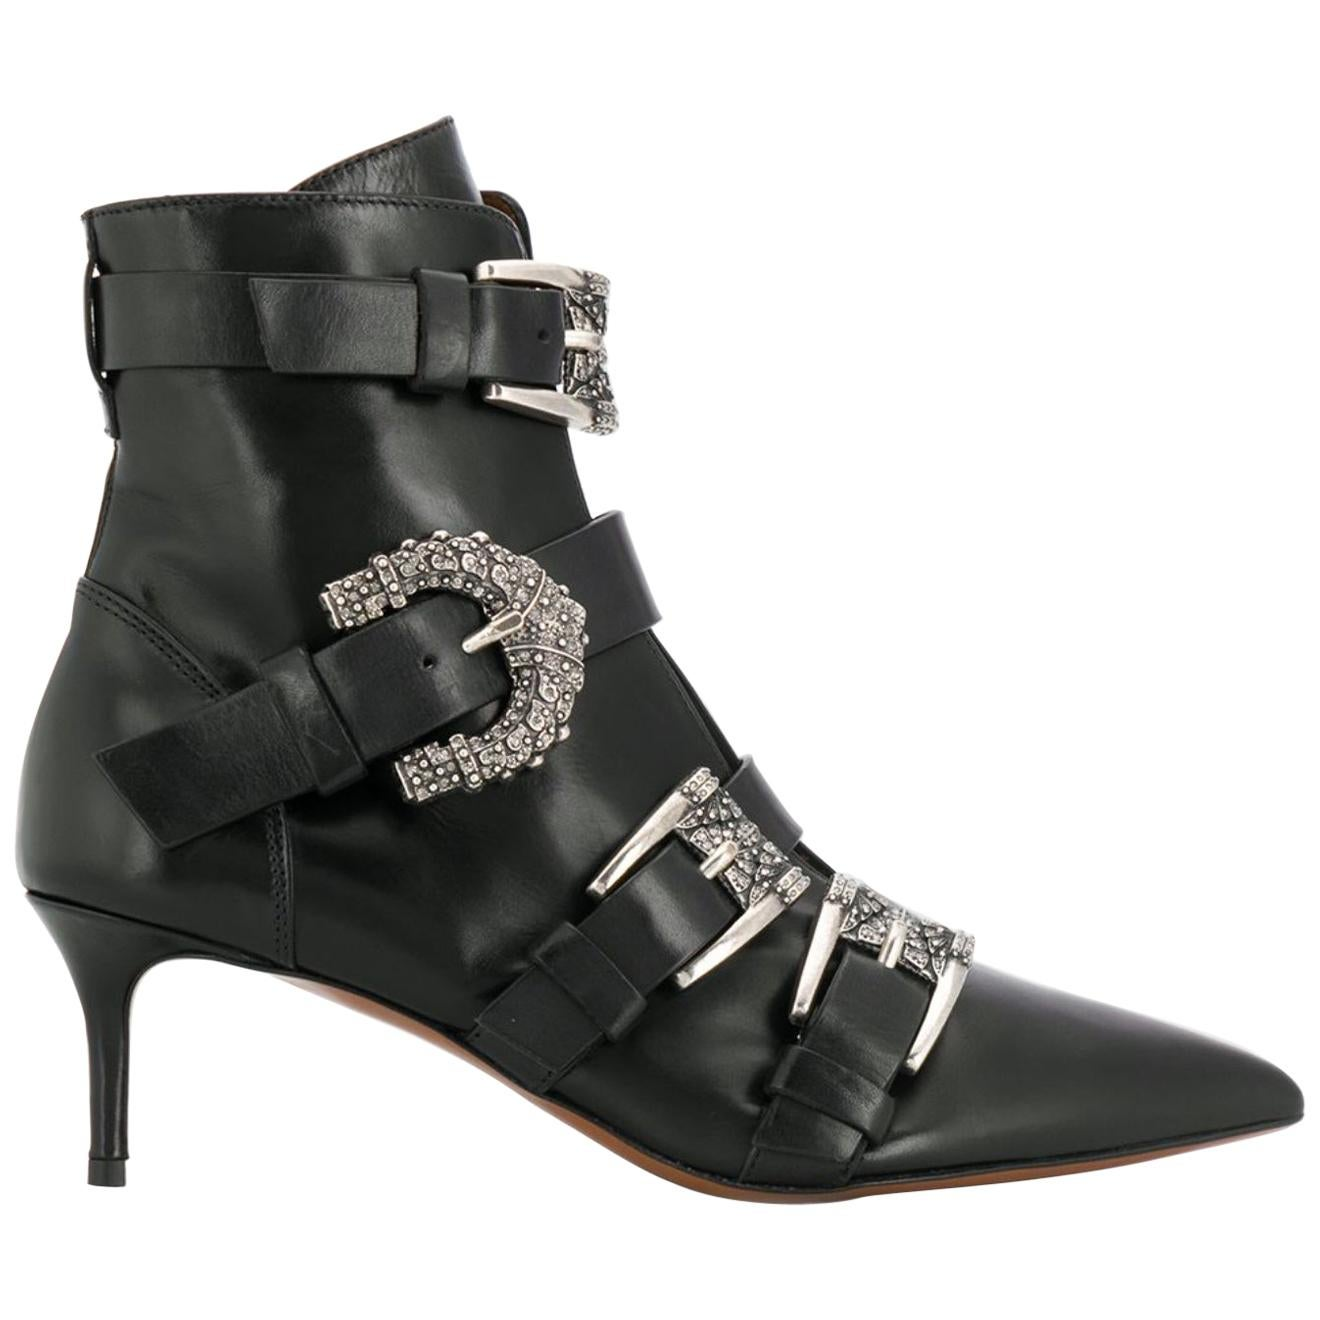 Etro Runway Embellished Side Buckle Black Leather Ankle Boots Size 37